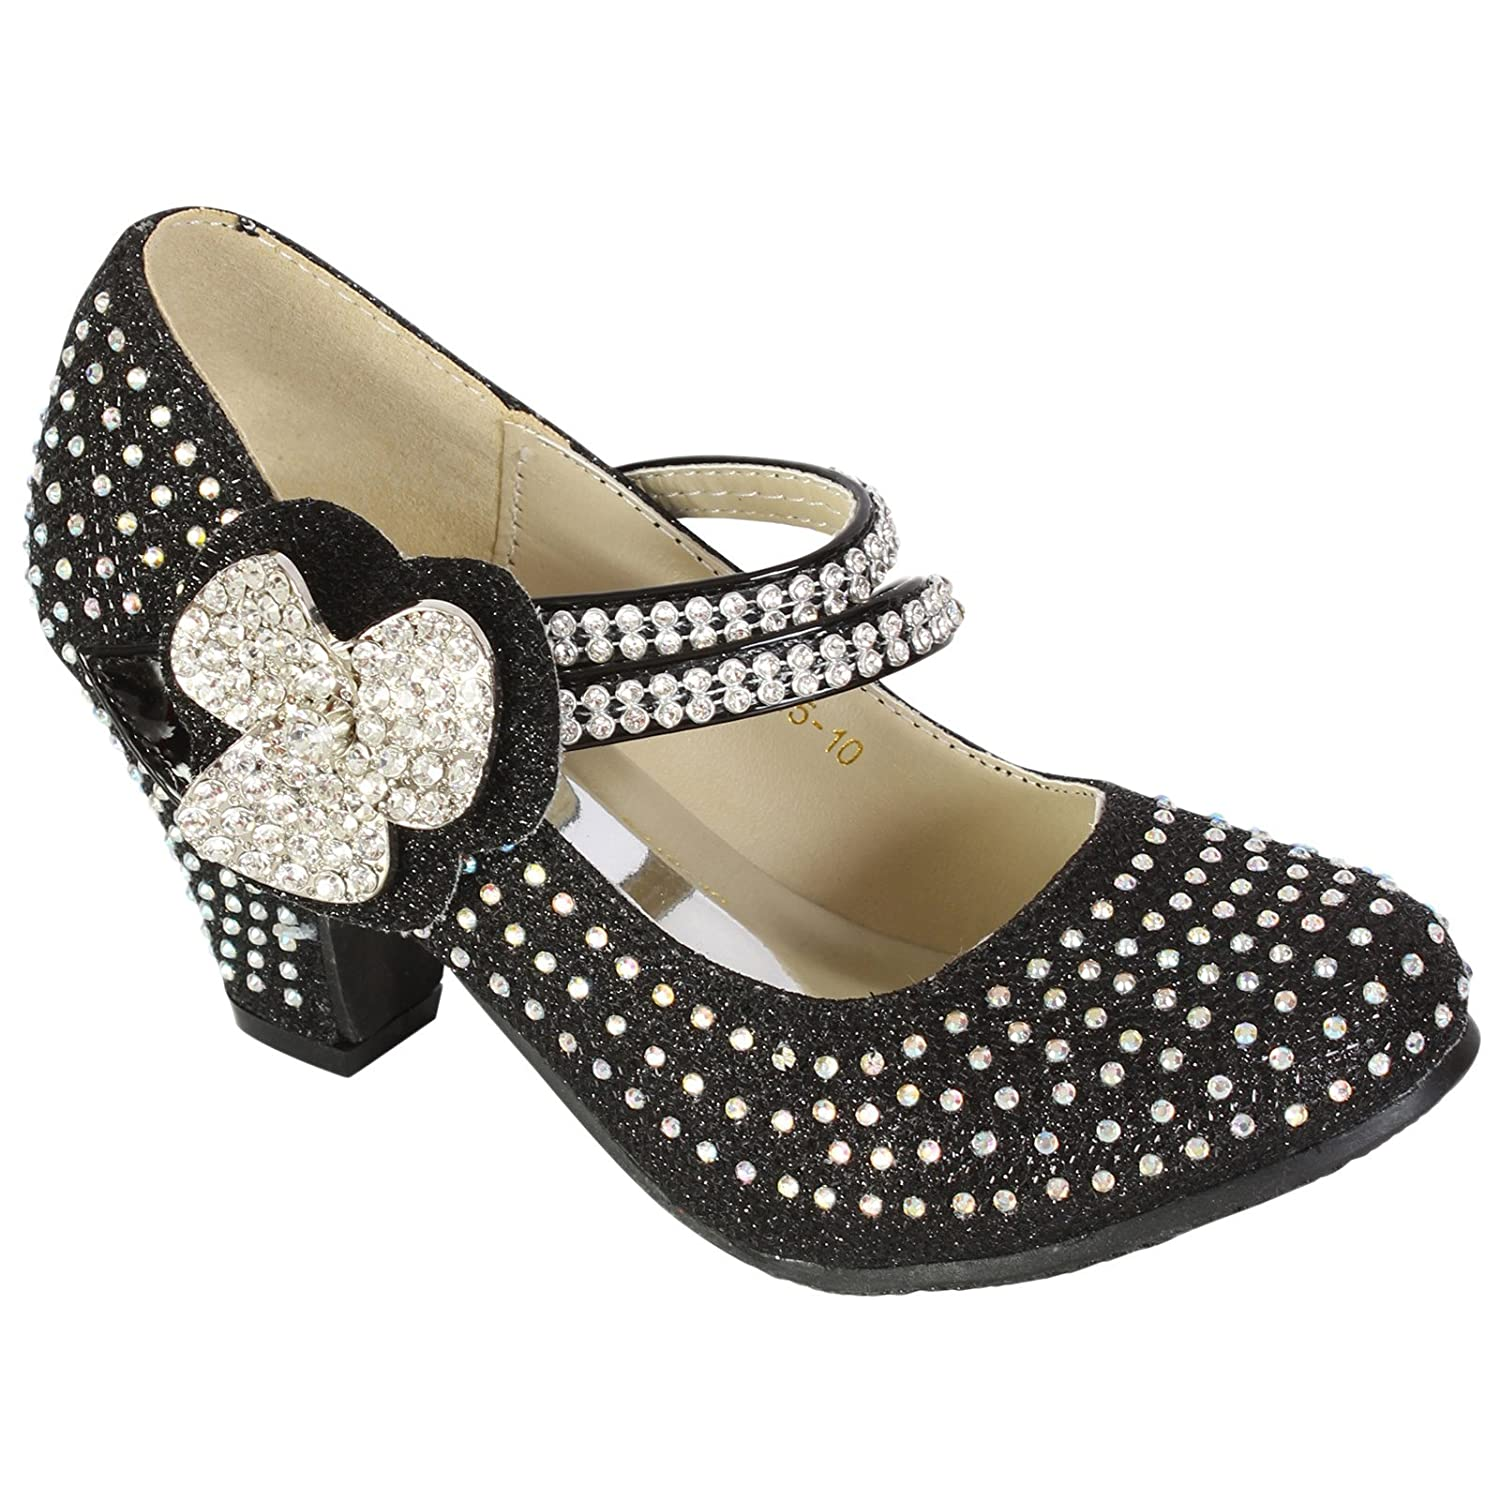 MyShoeStore Girls Diamante Shoe Kids Childrens Wedding Bridesmaid Prom Mary  Jane Style Court Shoes Block Low Heel Touch Fastening Party Sandals Size  9 3: ...